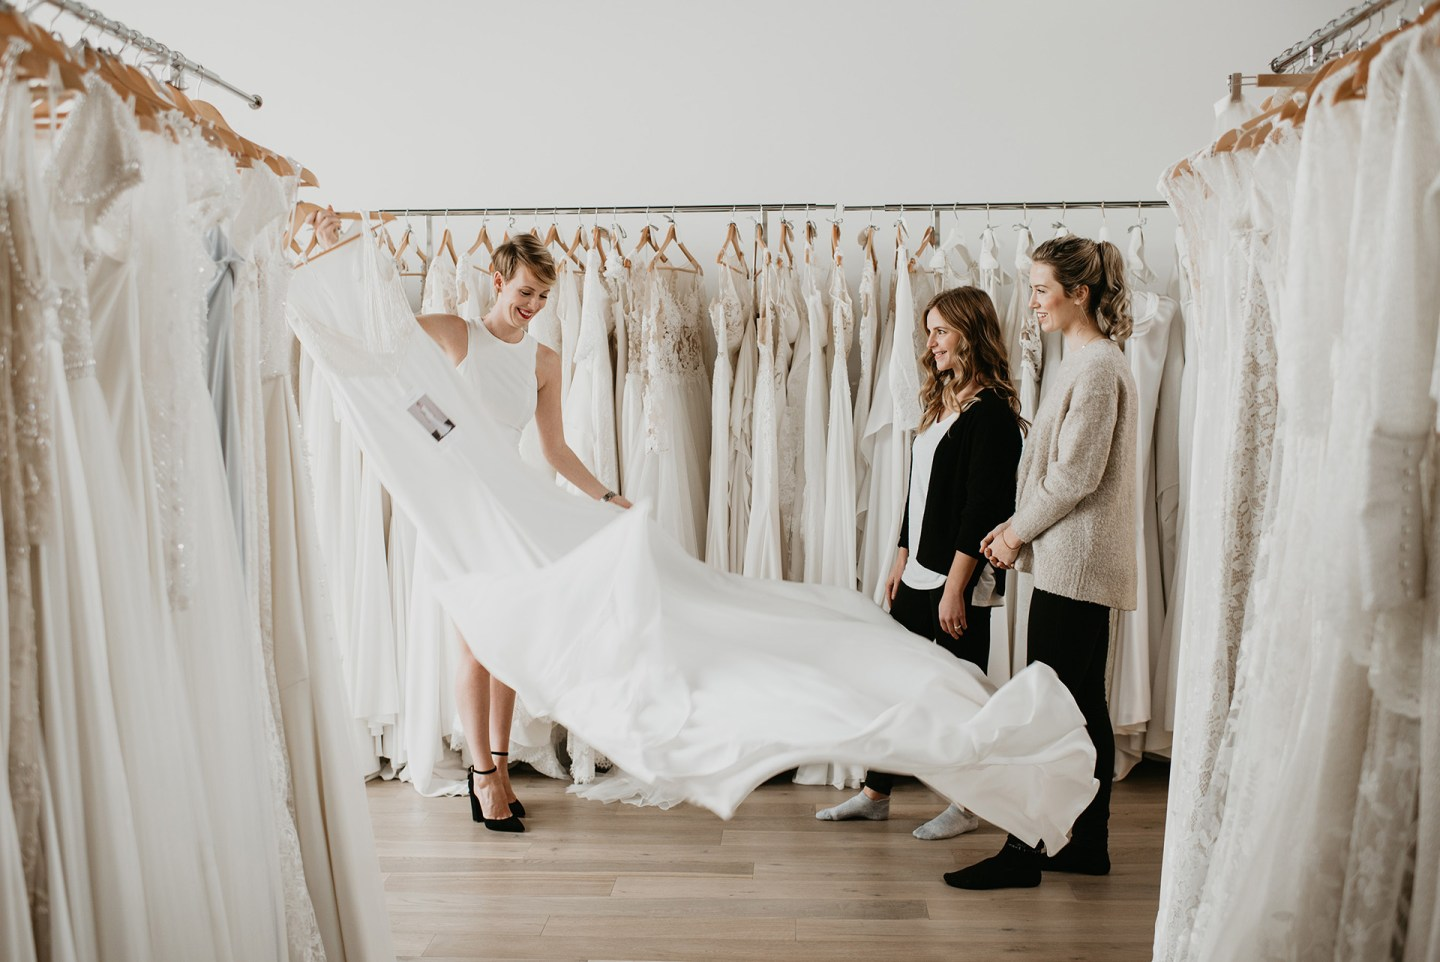 GETTING TO KNOW: THE MODERN BRIDE